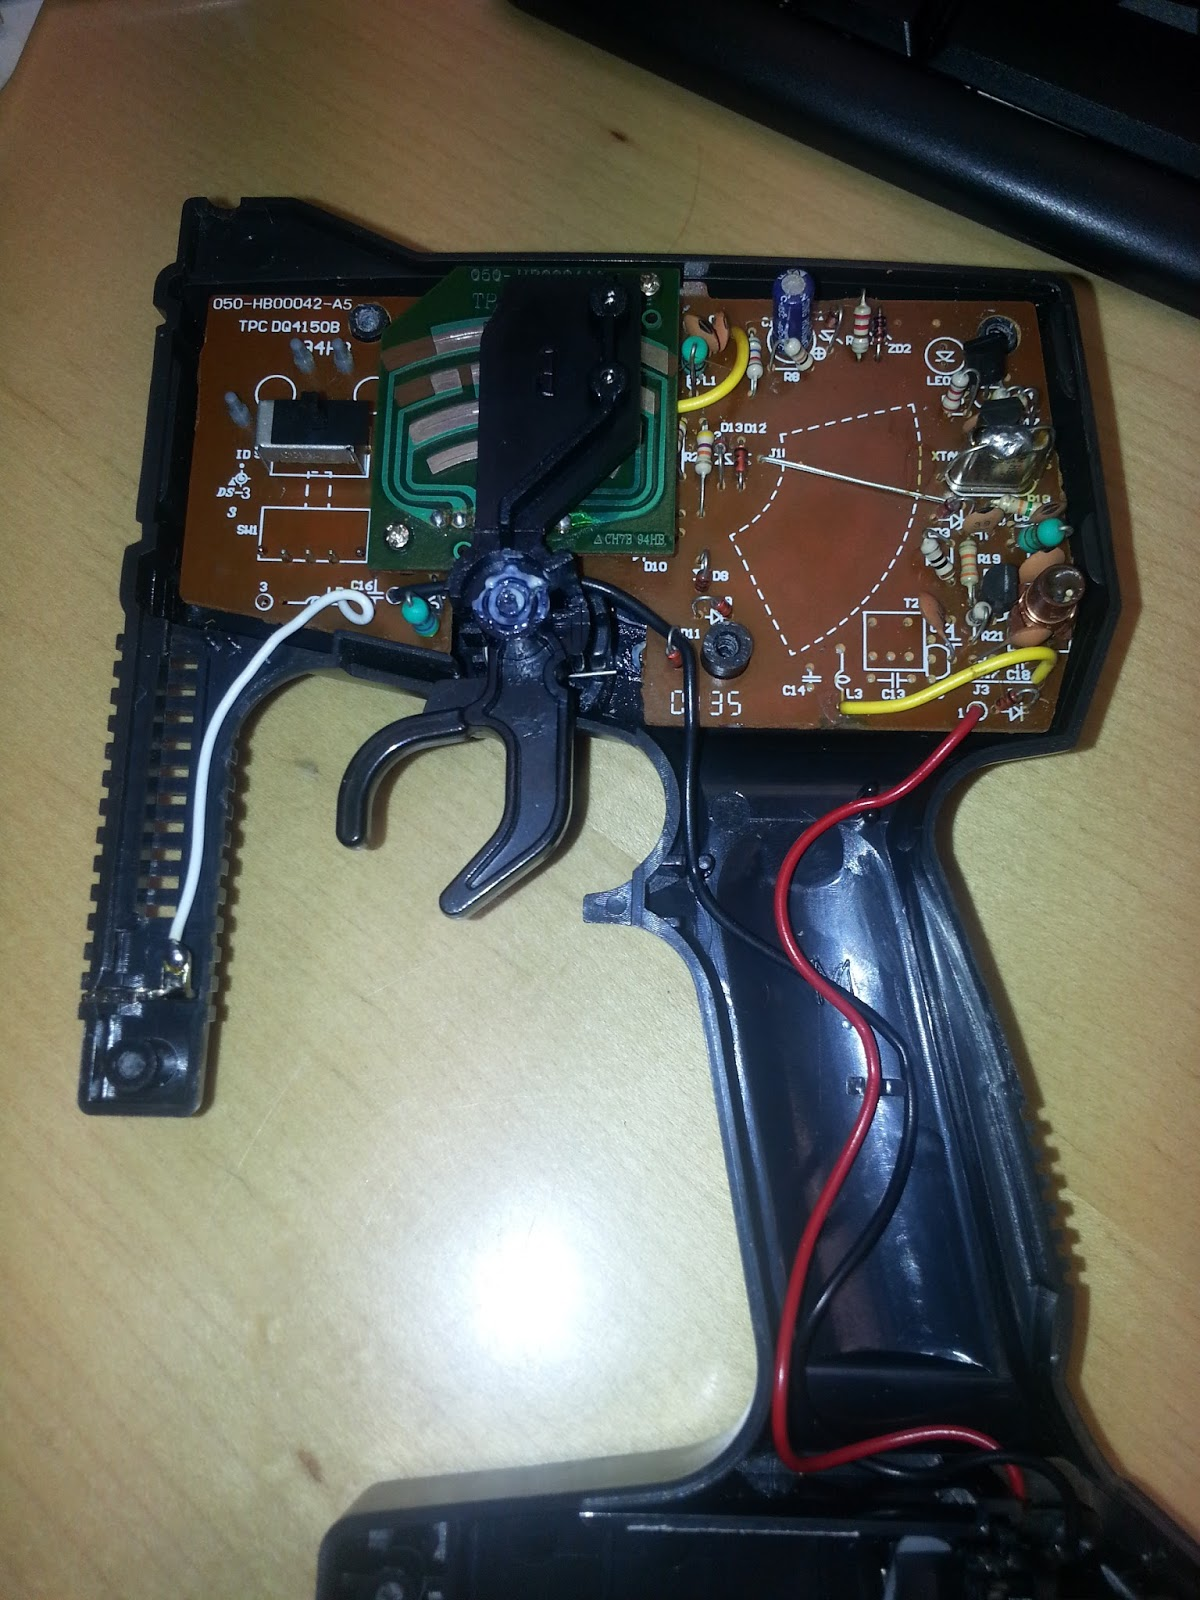 how to open a remote control without screws